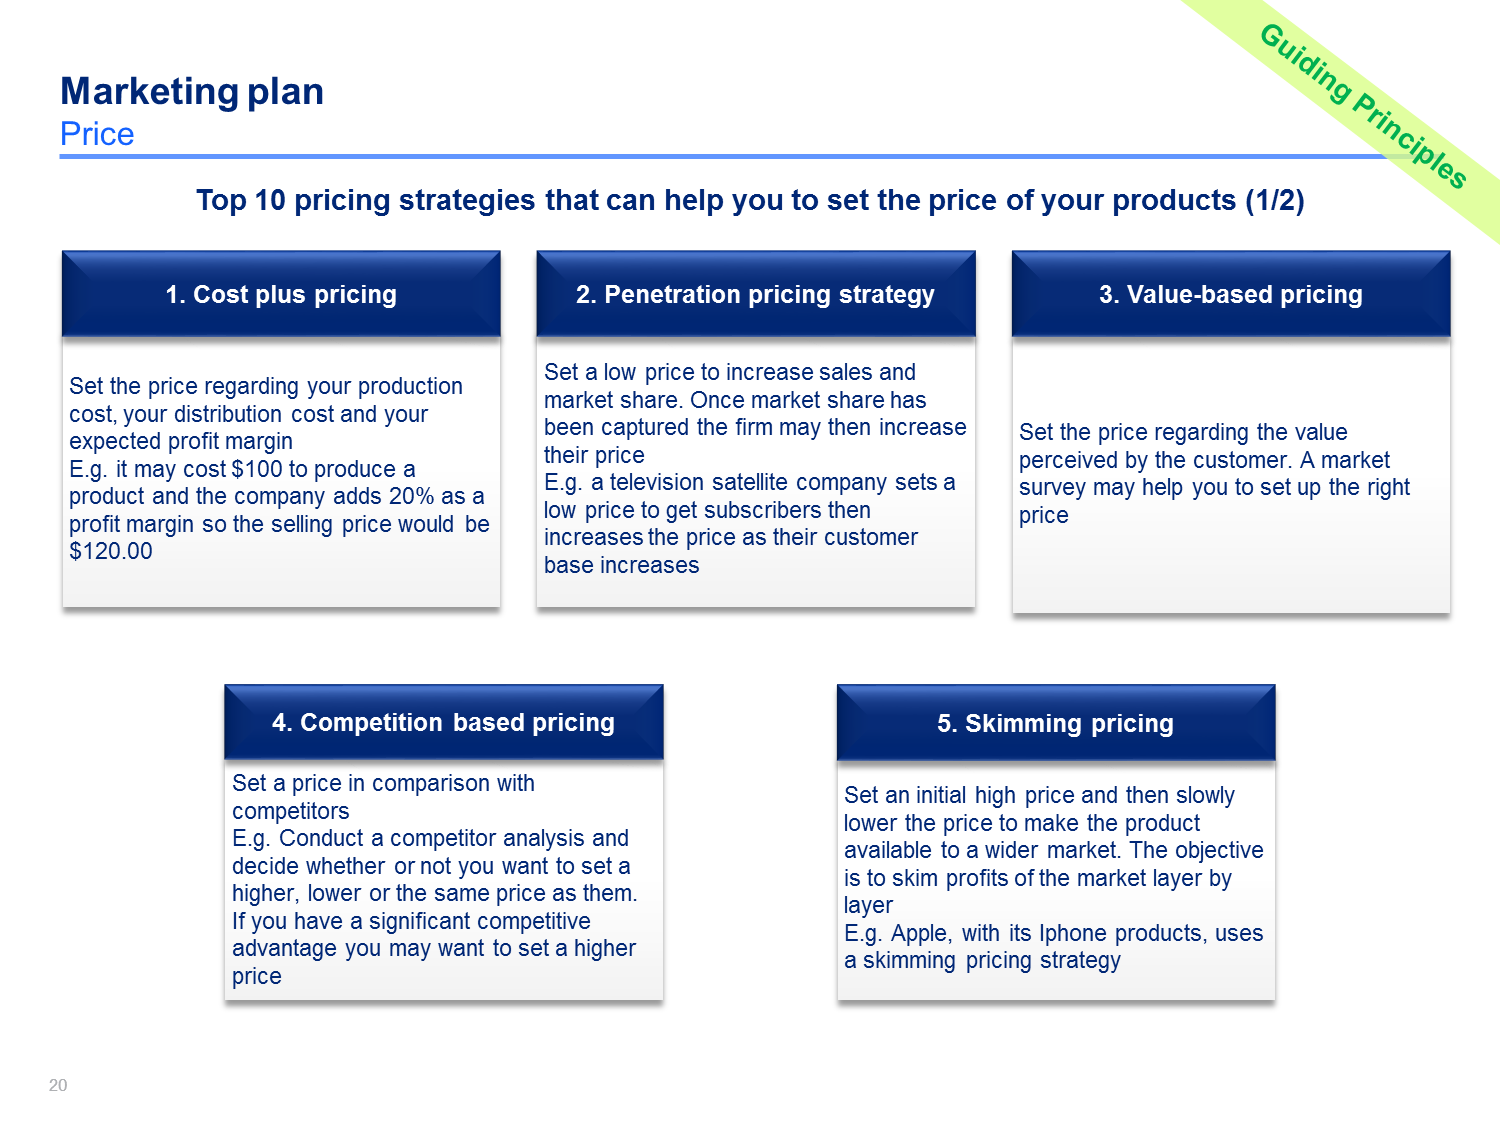 Marketing plan format Marketing strategy plan, Marketing